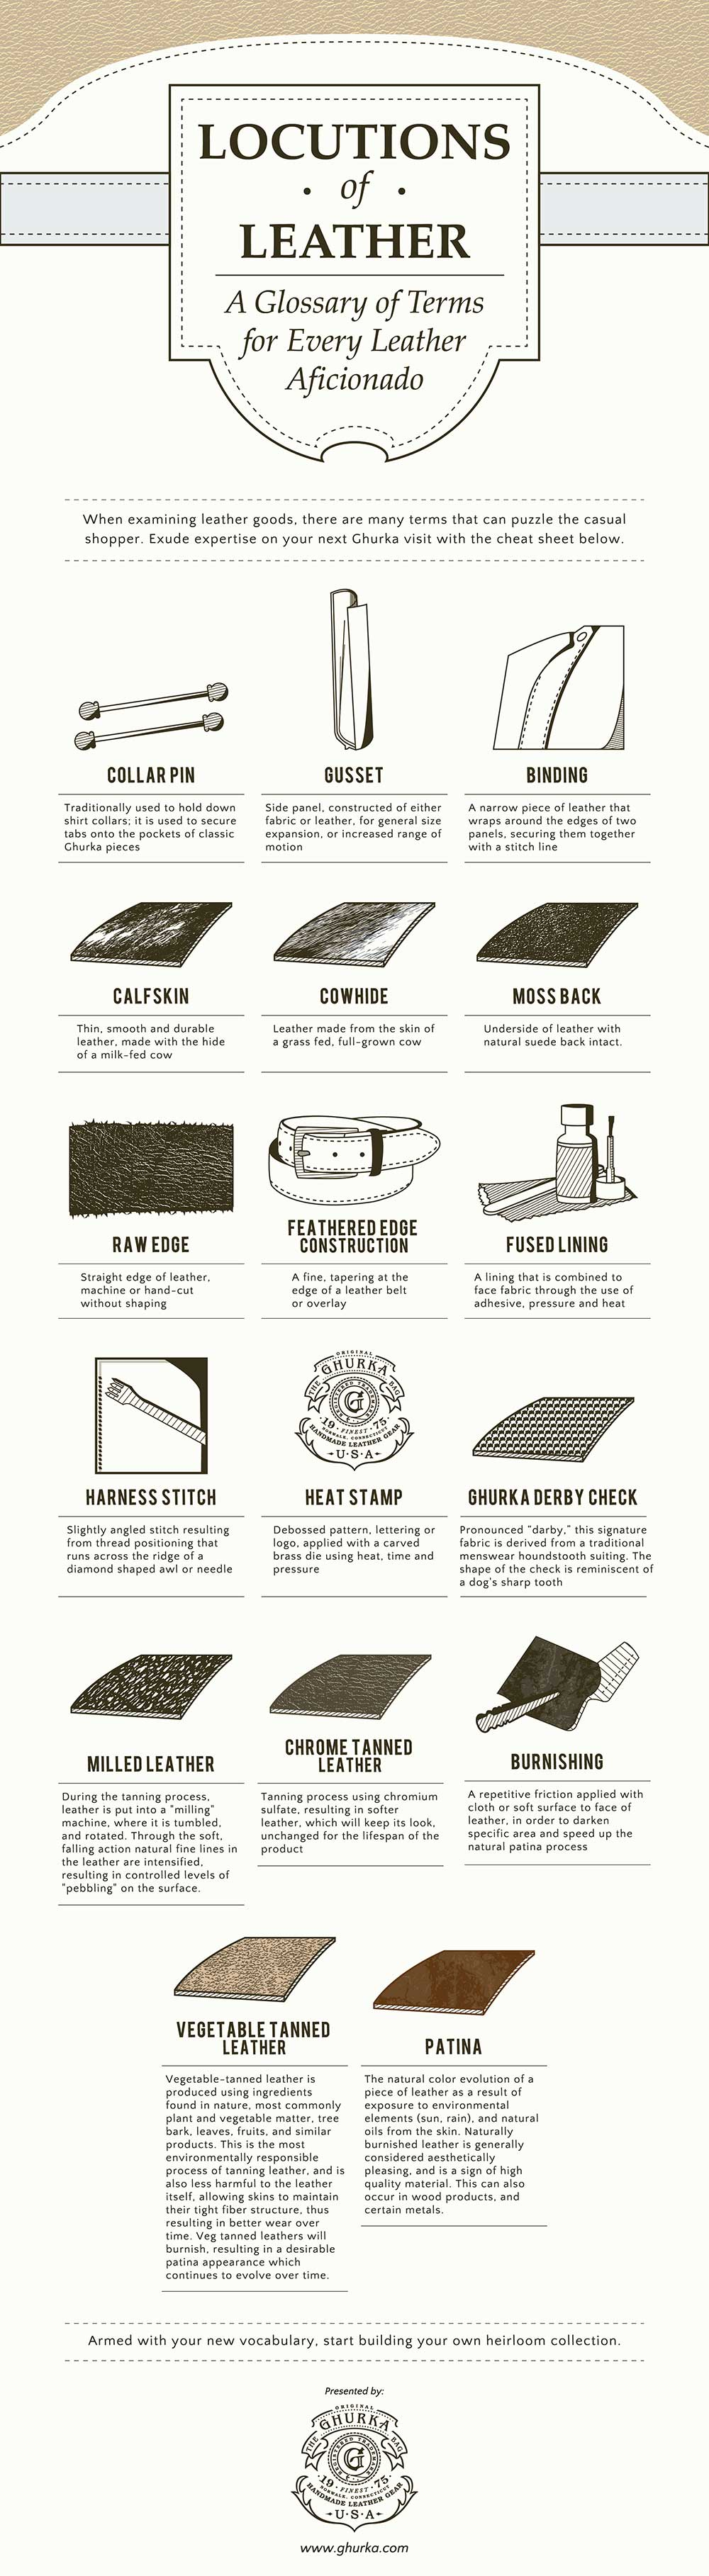 Not familiar with leather terminology? Check out this Locutions of Leather glossary of terms infographic by Ghurka leather bags. View on Make It Work Molly!